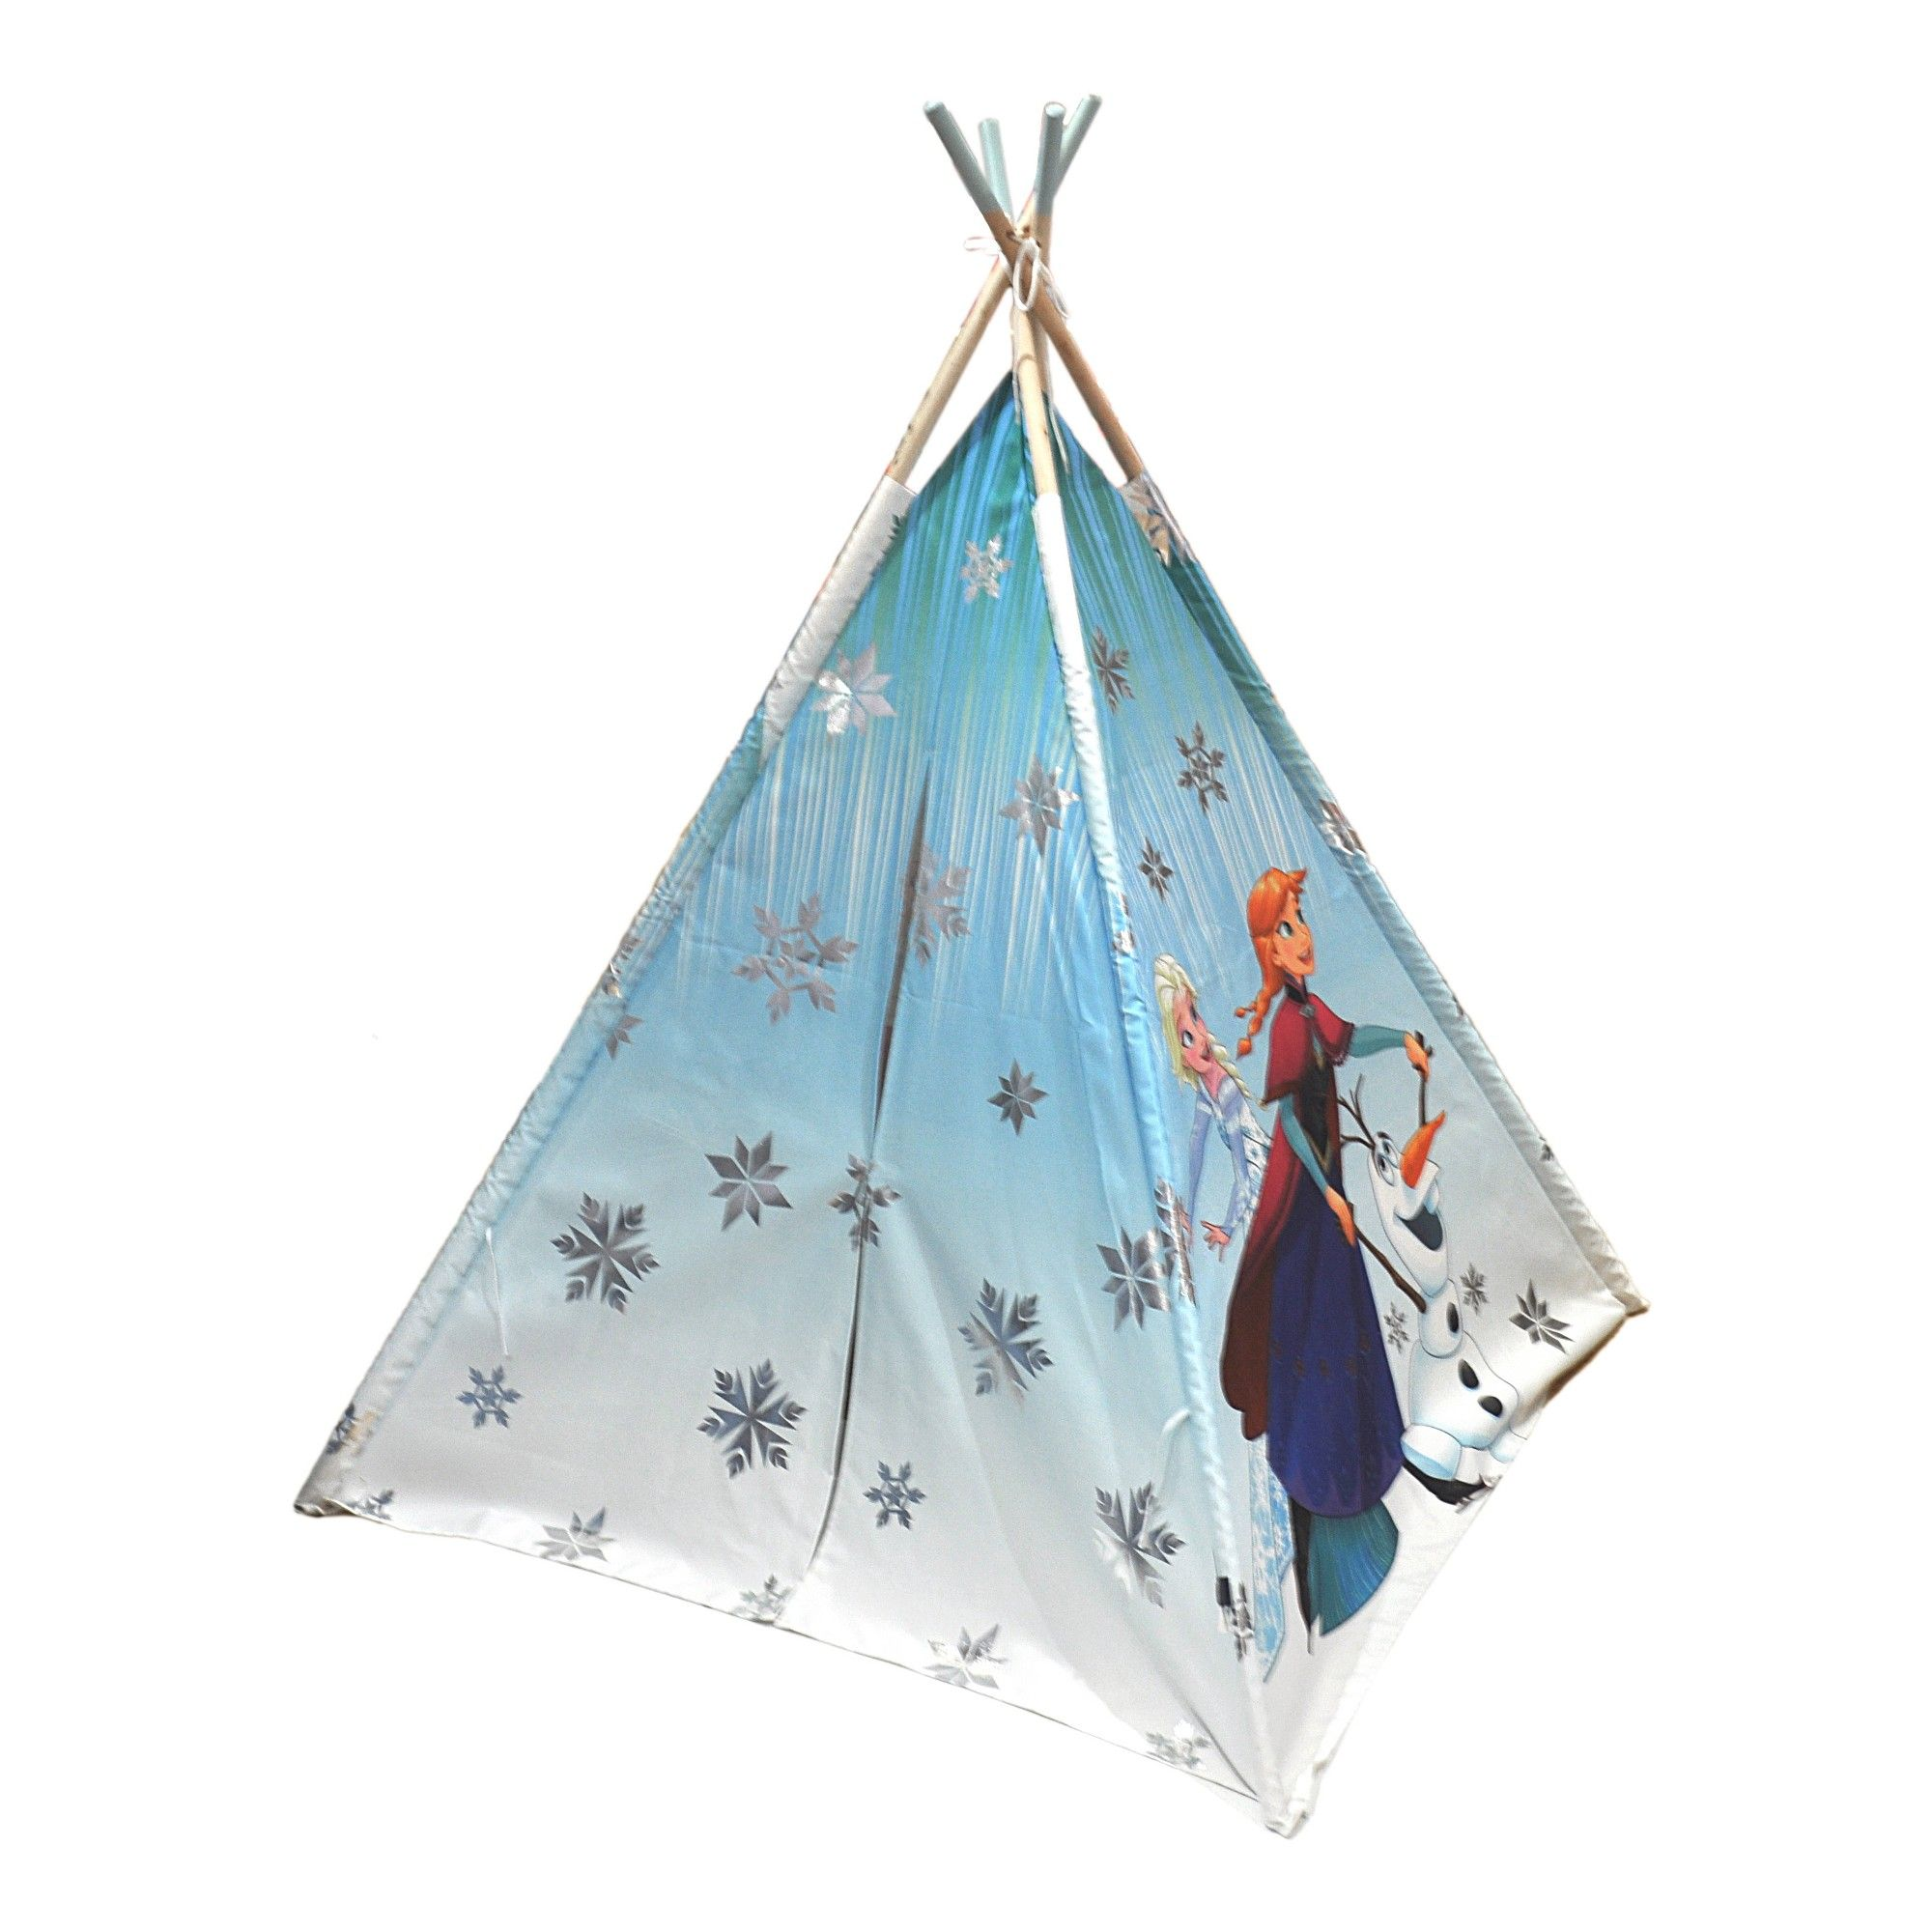 Frozen Blue Play Tent Play Tents and Tunnels  sc 1 st  Pinterest & Frozen Blue Play Tent Play Tents and Tunnels | Tents and Products